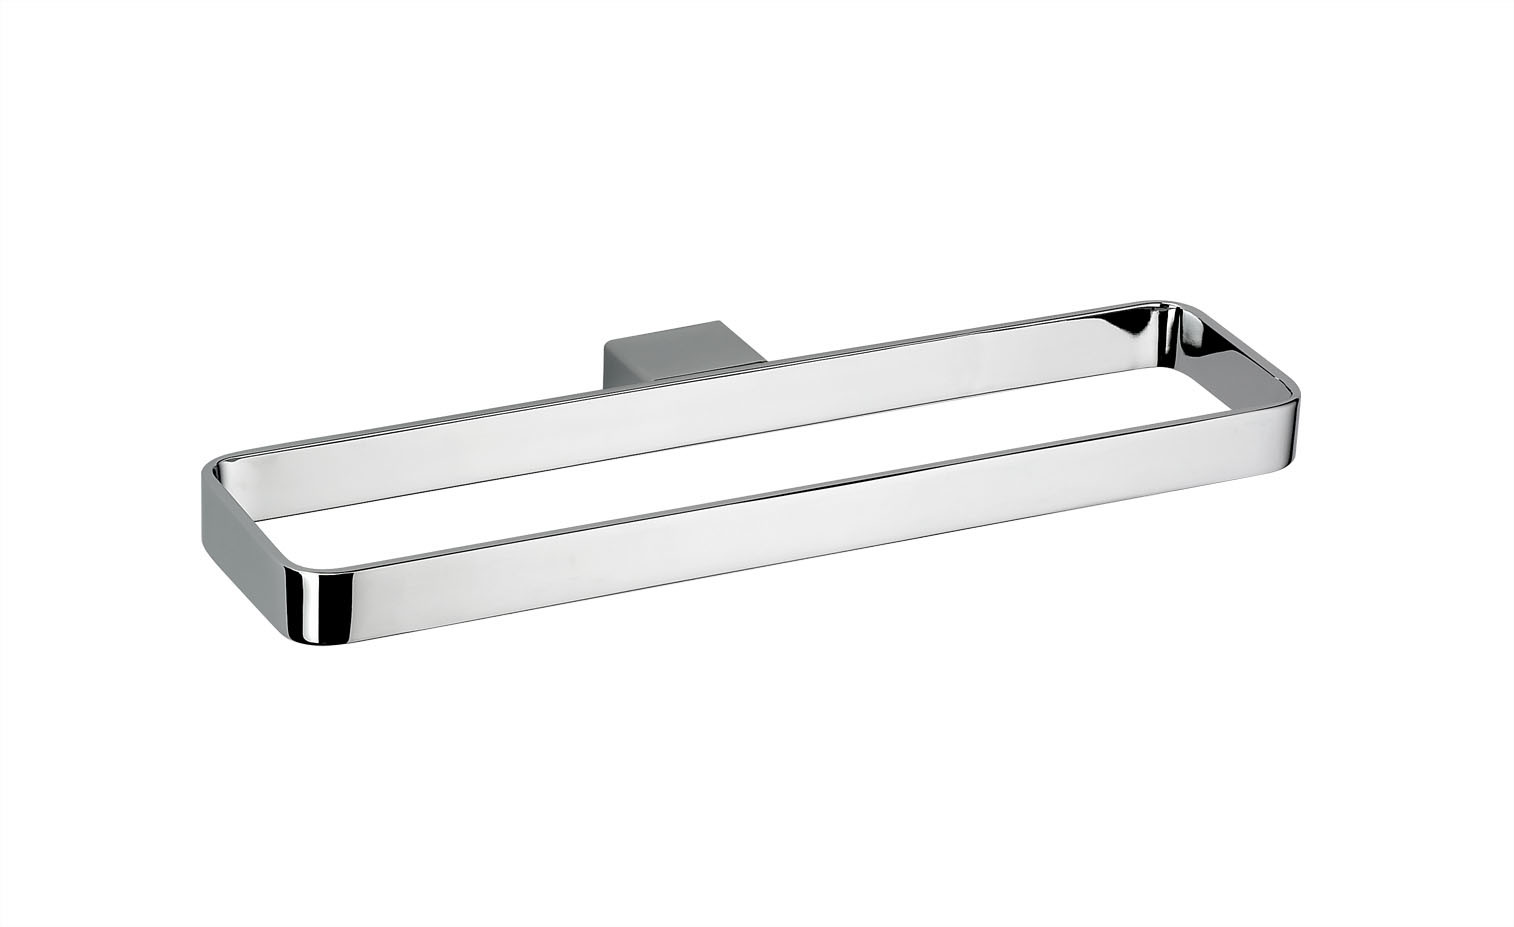 Stylish Square Solid Brass Bathroom Double Towel Bar